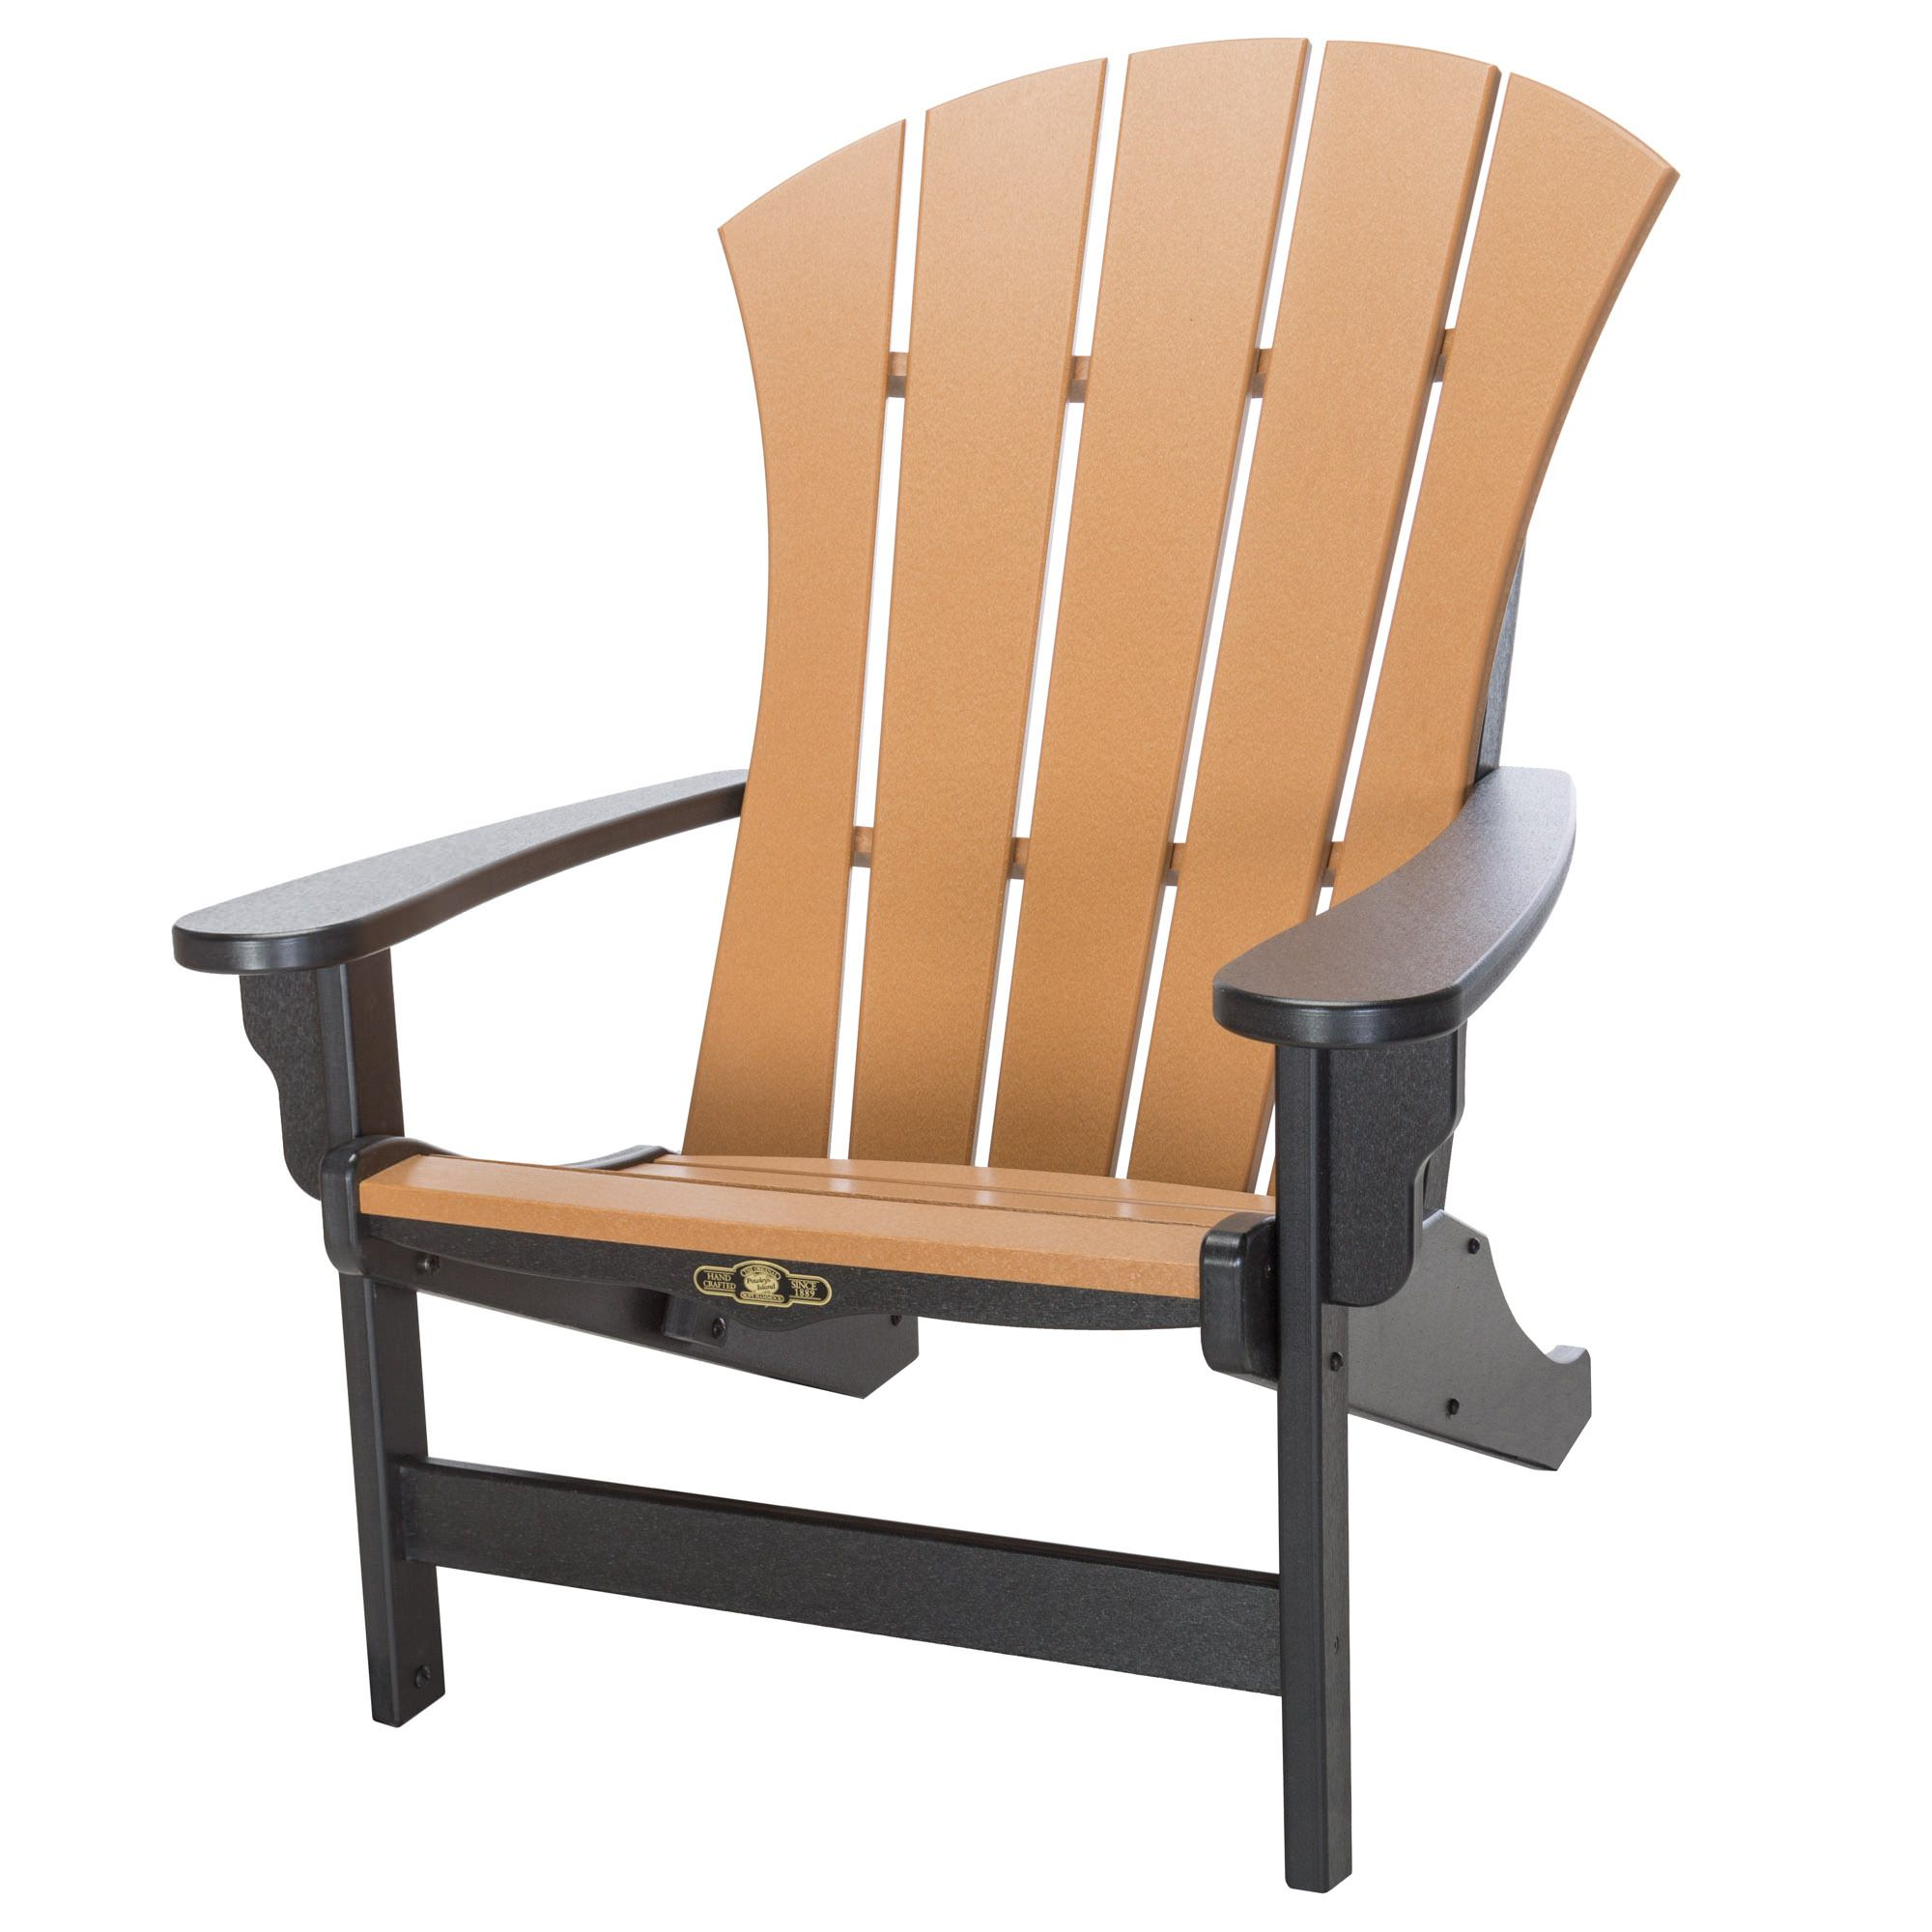 sunrise adirondack chair pawleys island. Black Bedroom Furniture Sets. Home Design Ideas